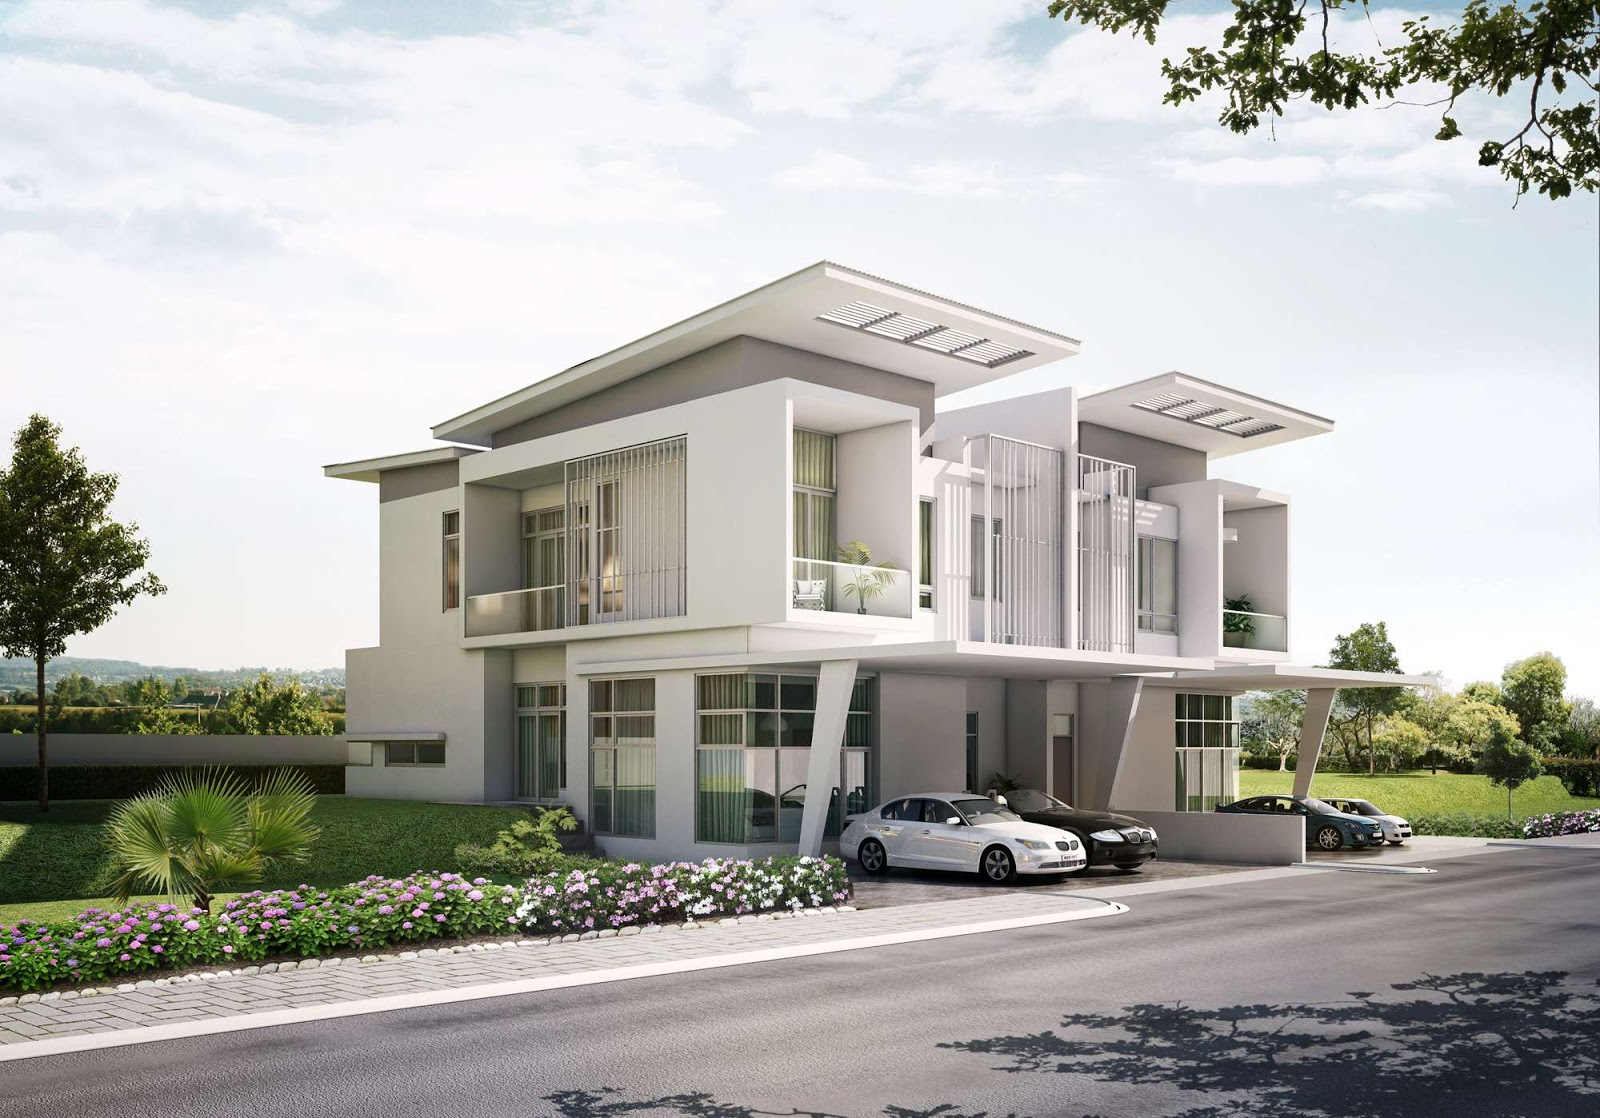 New home designs latest singapore modern homes exterior designs Exterior home entrance design ideas